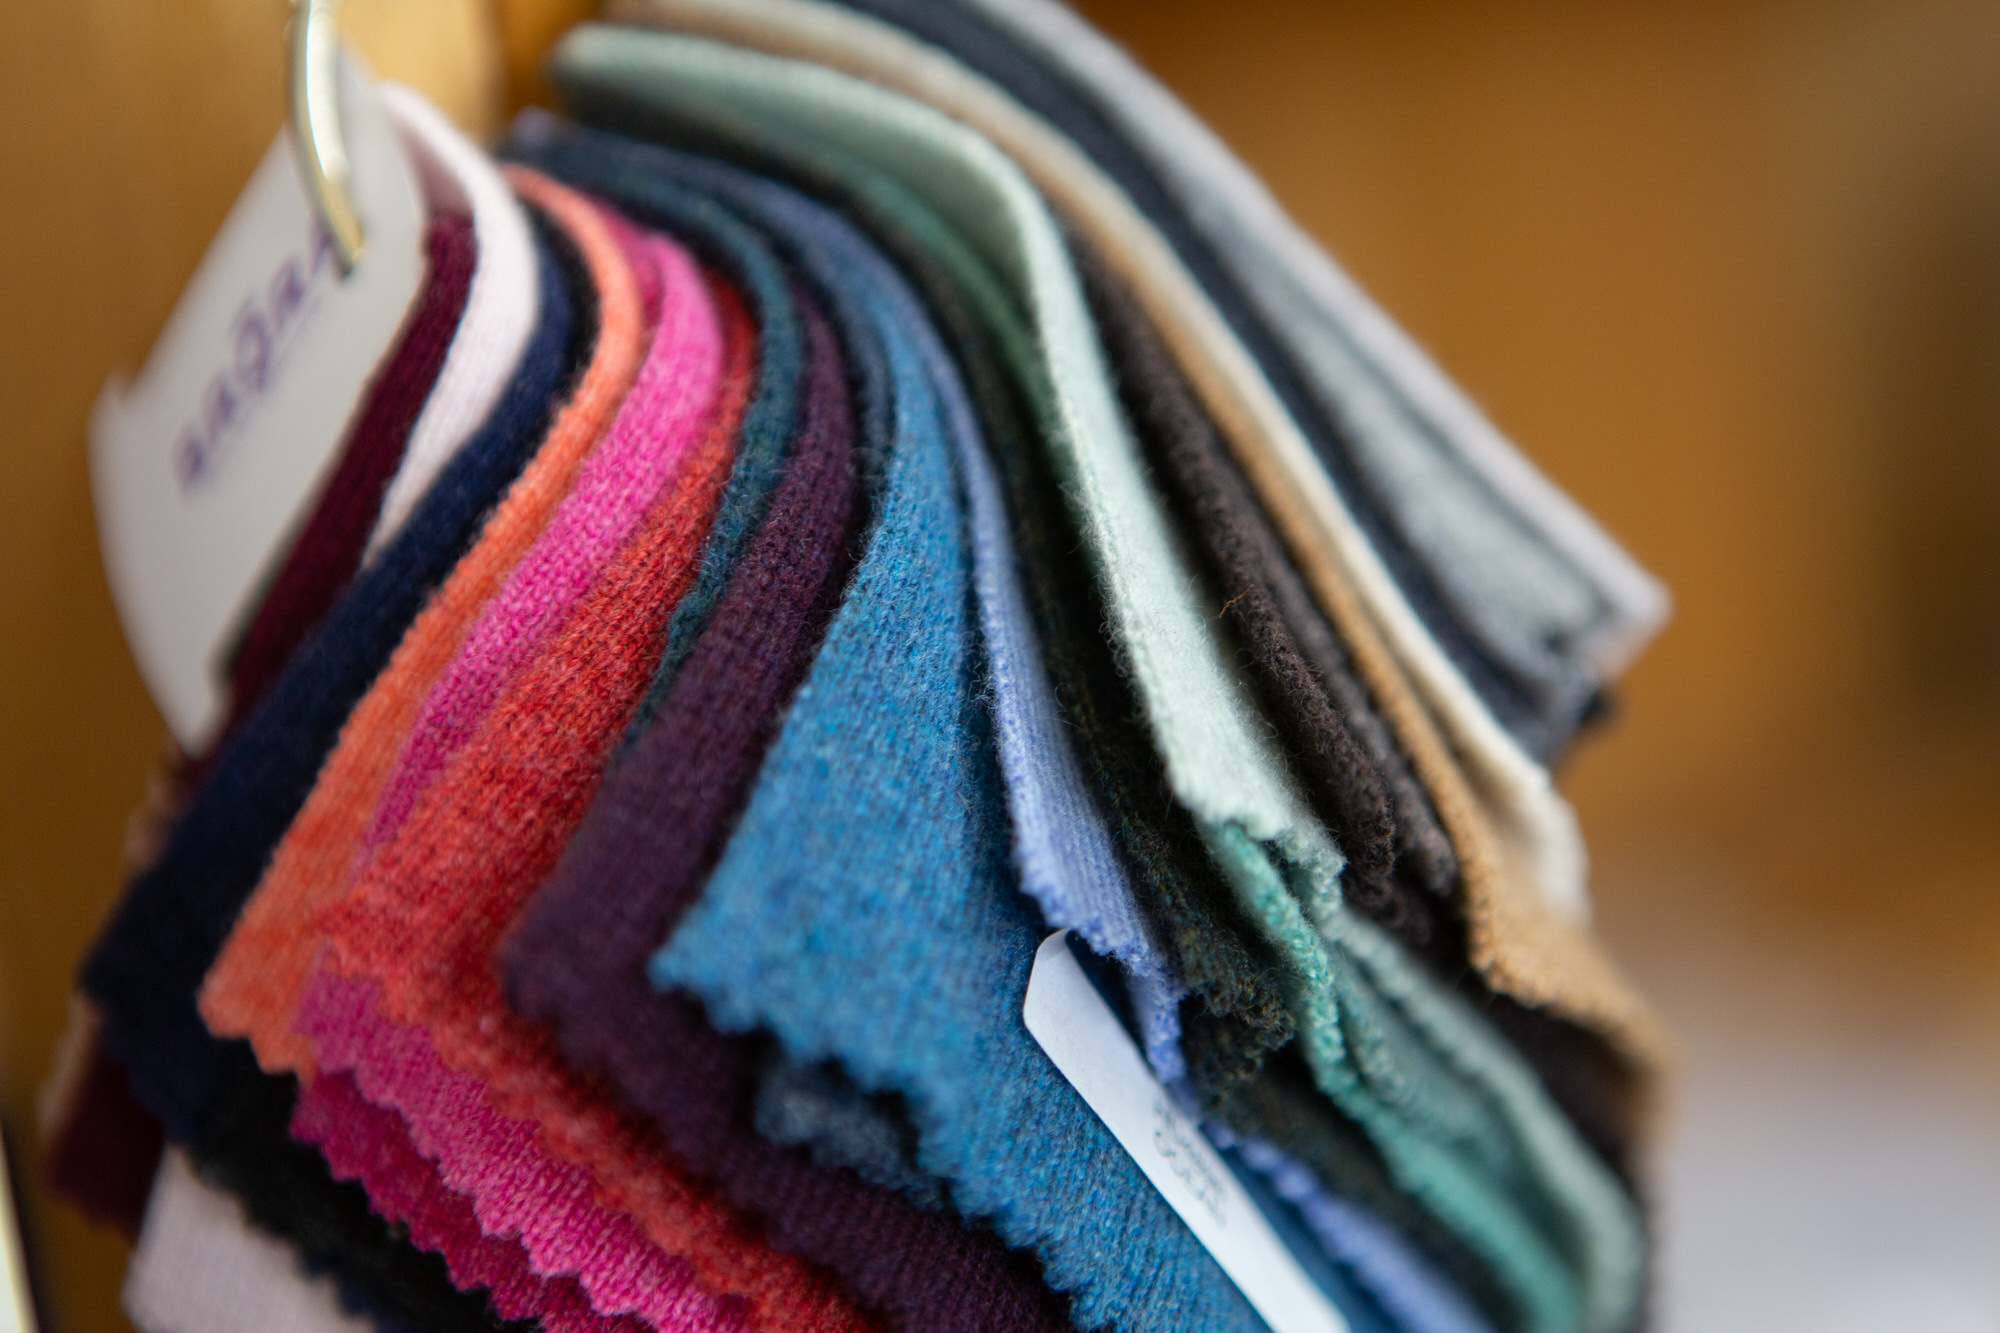 Cashmere samples